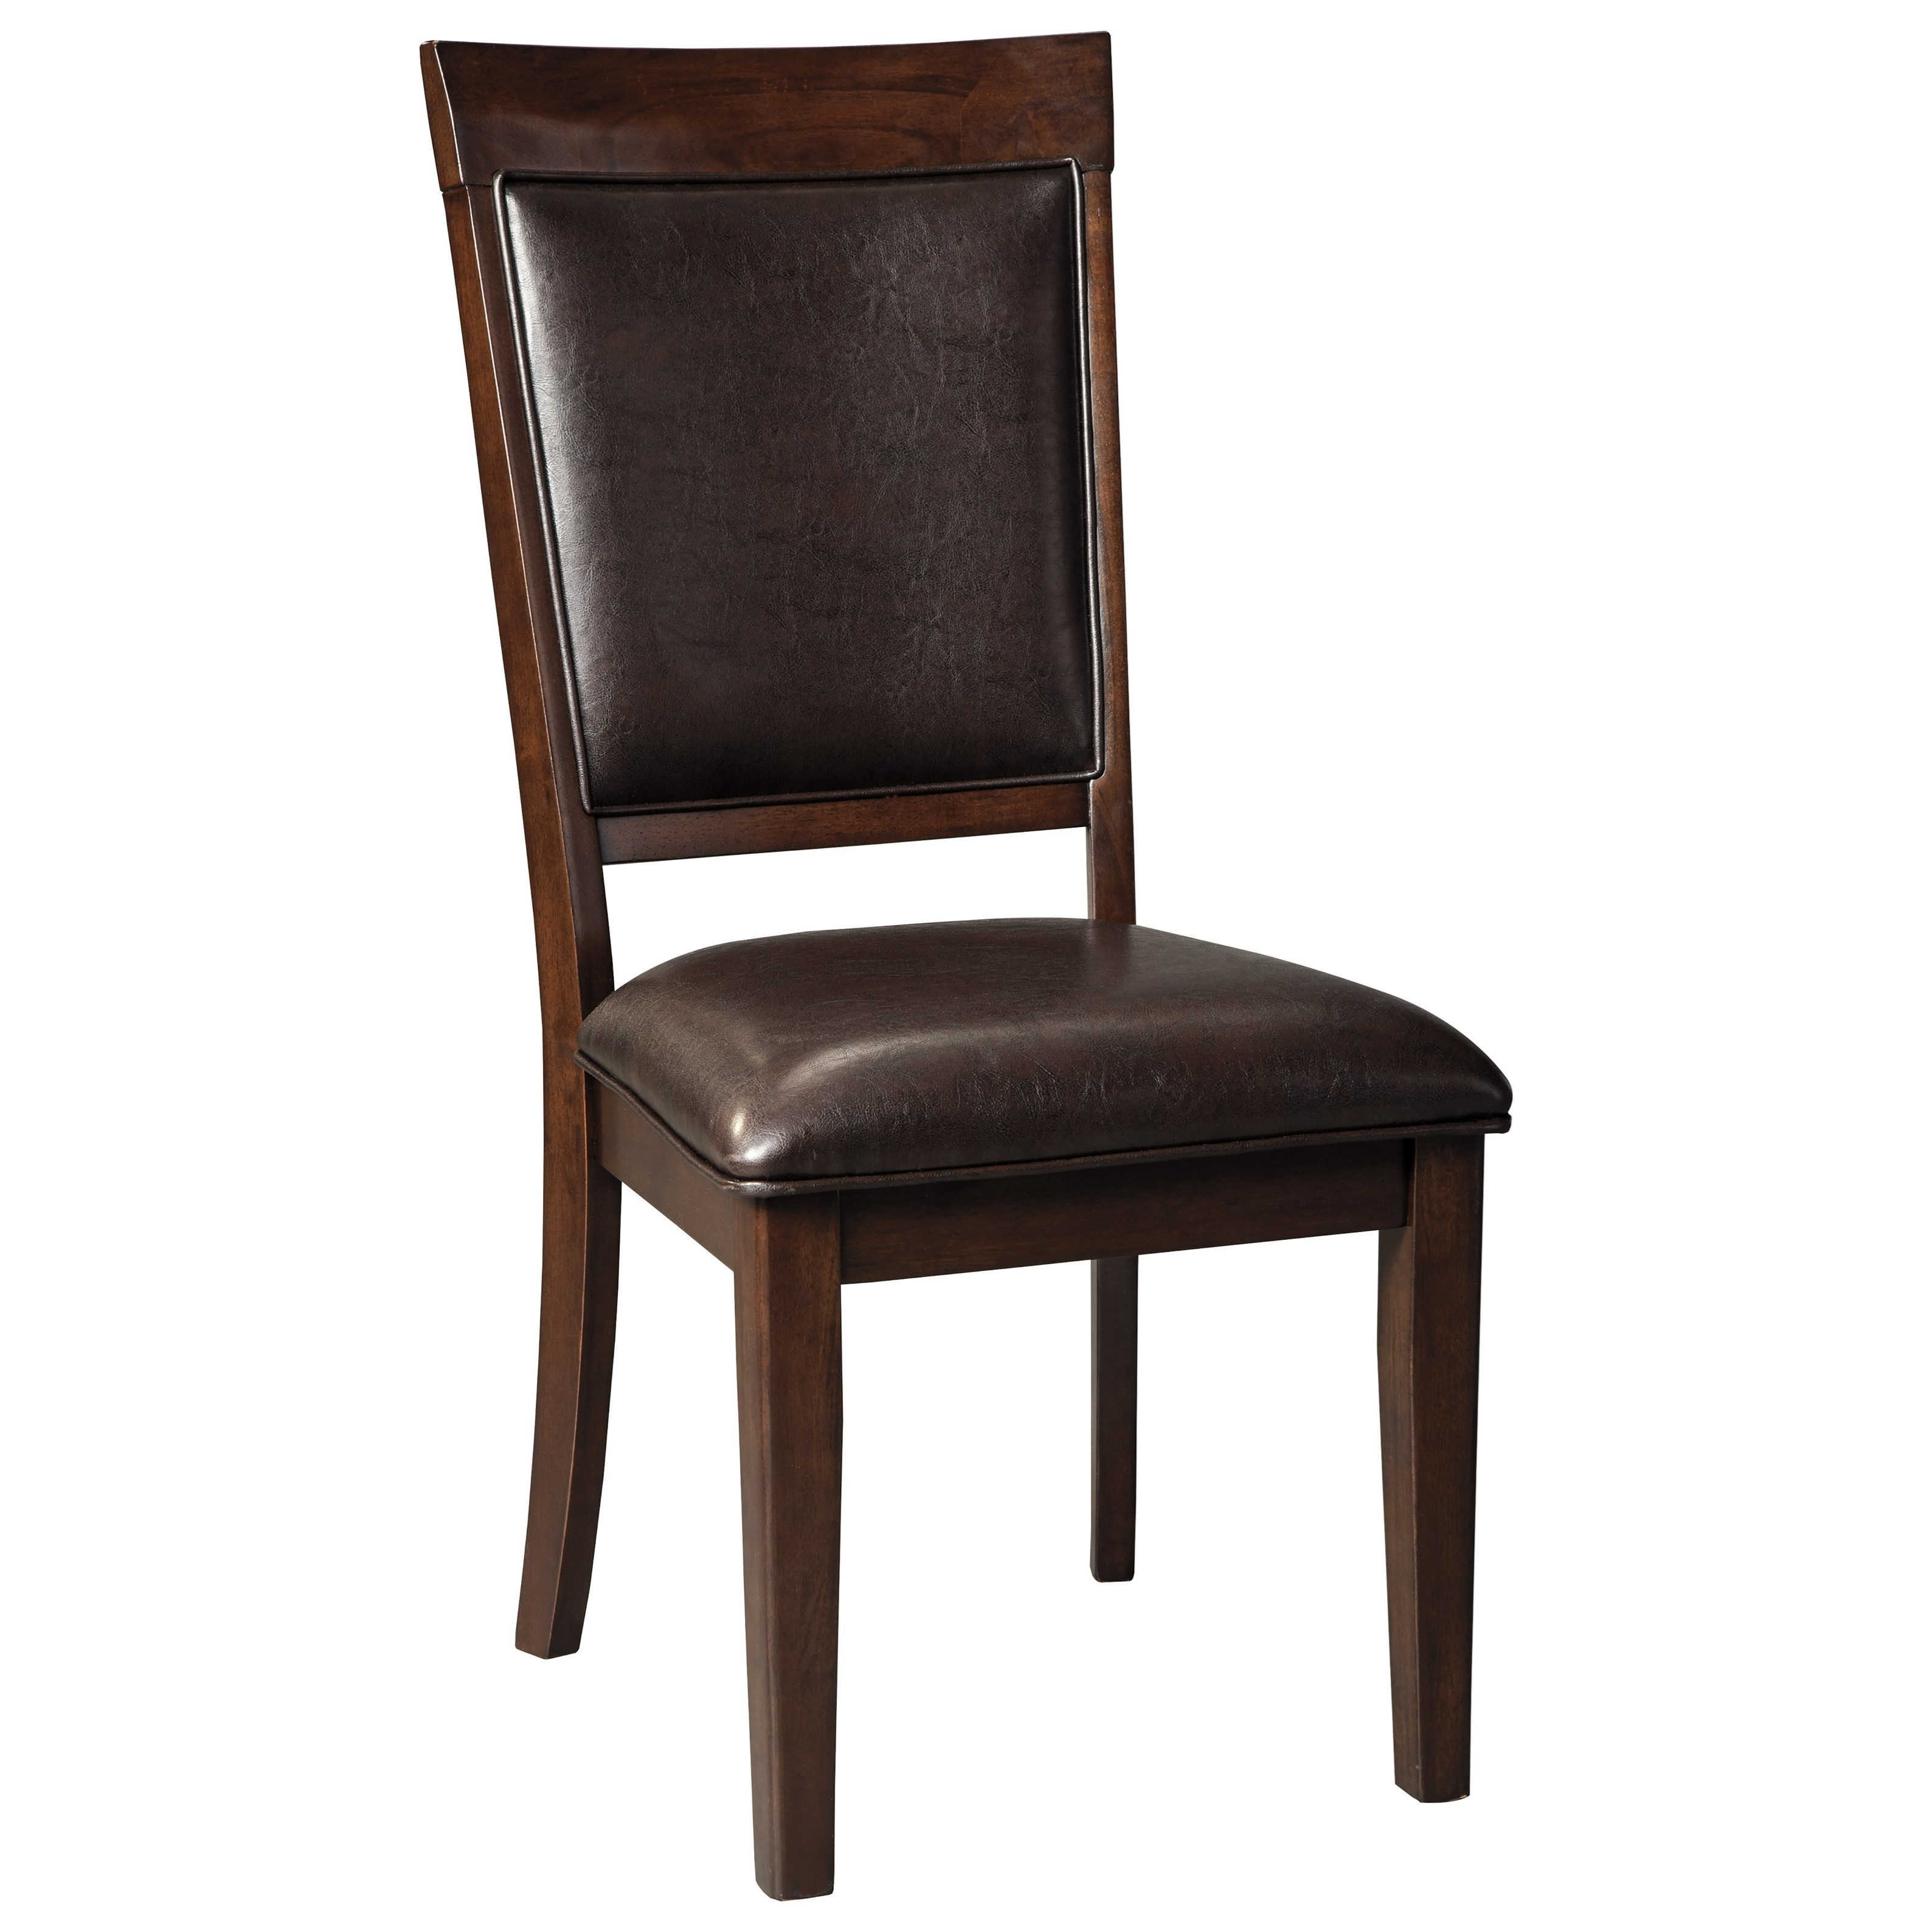 Signature Design By Ashley Shadyn D471 01 Dining Upholstered Side Chair In Brown Faux Leather